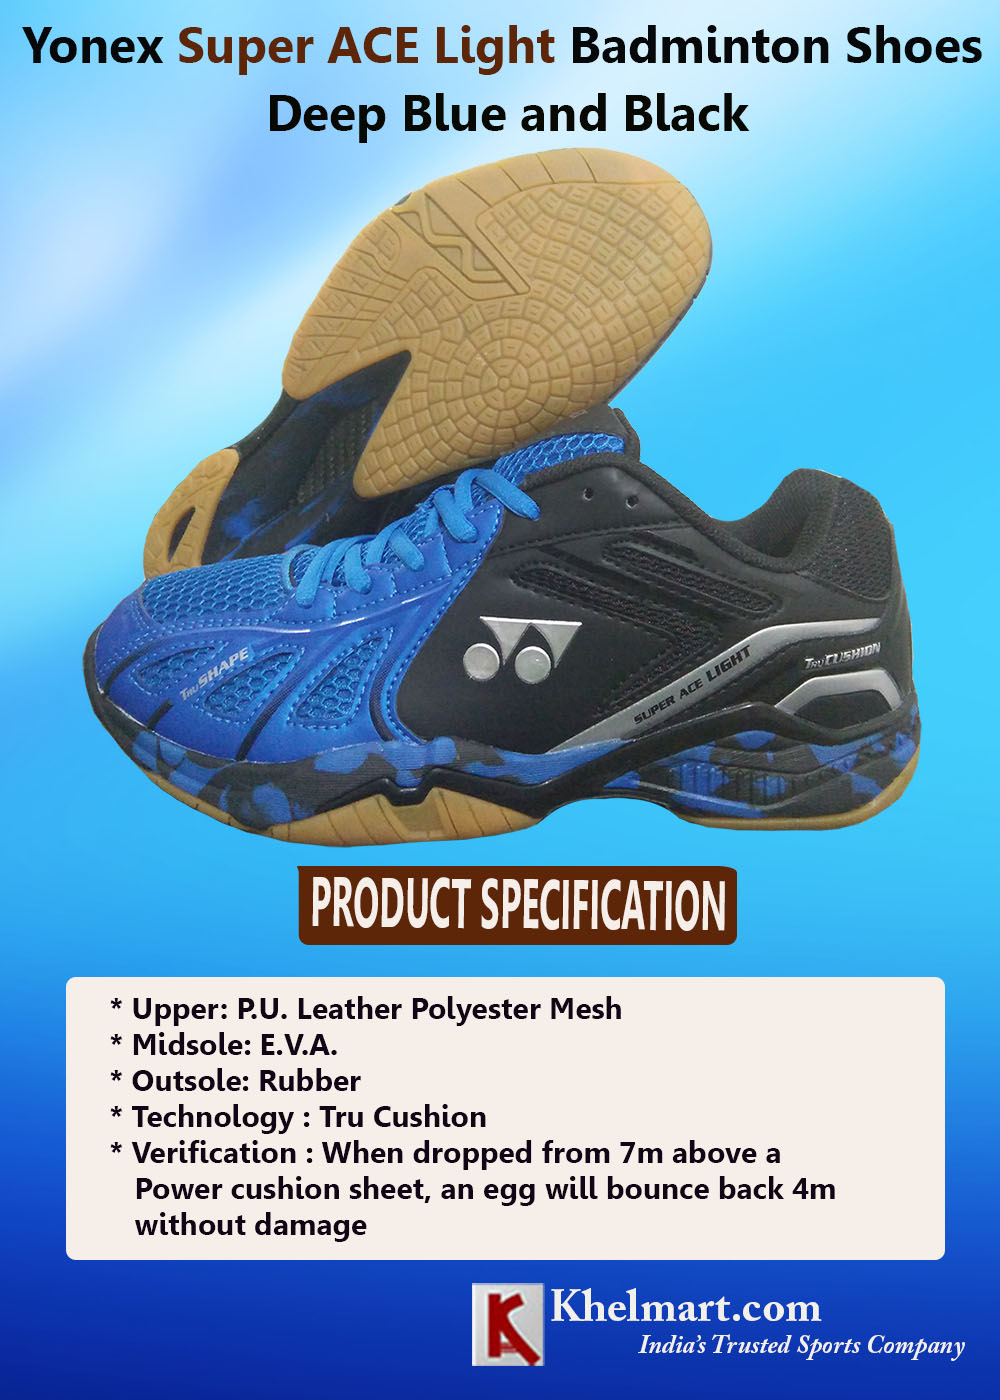 Yonex-Super-ACE-Light-Badminton-Shoes-Deep-Blue-and-Black.jpg